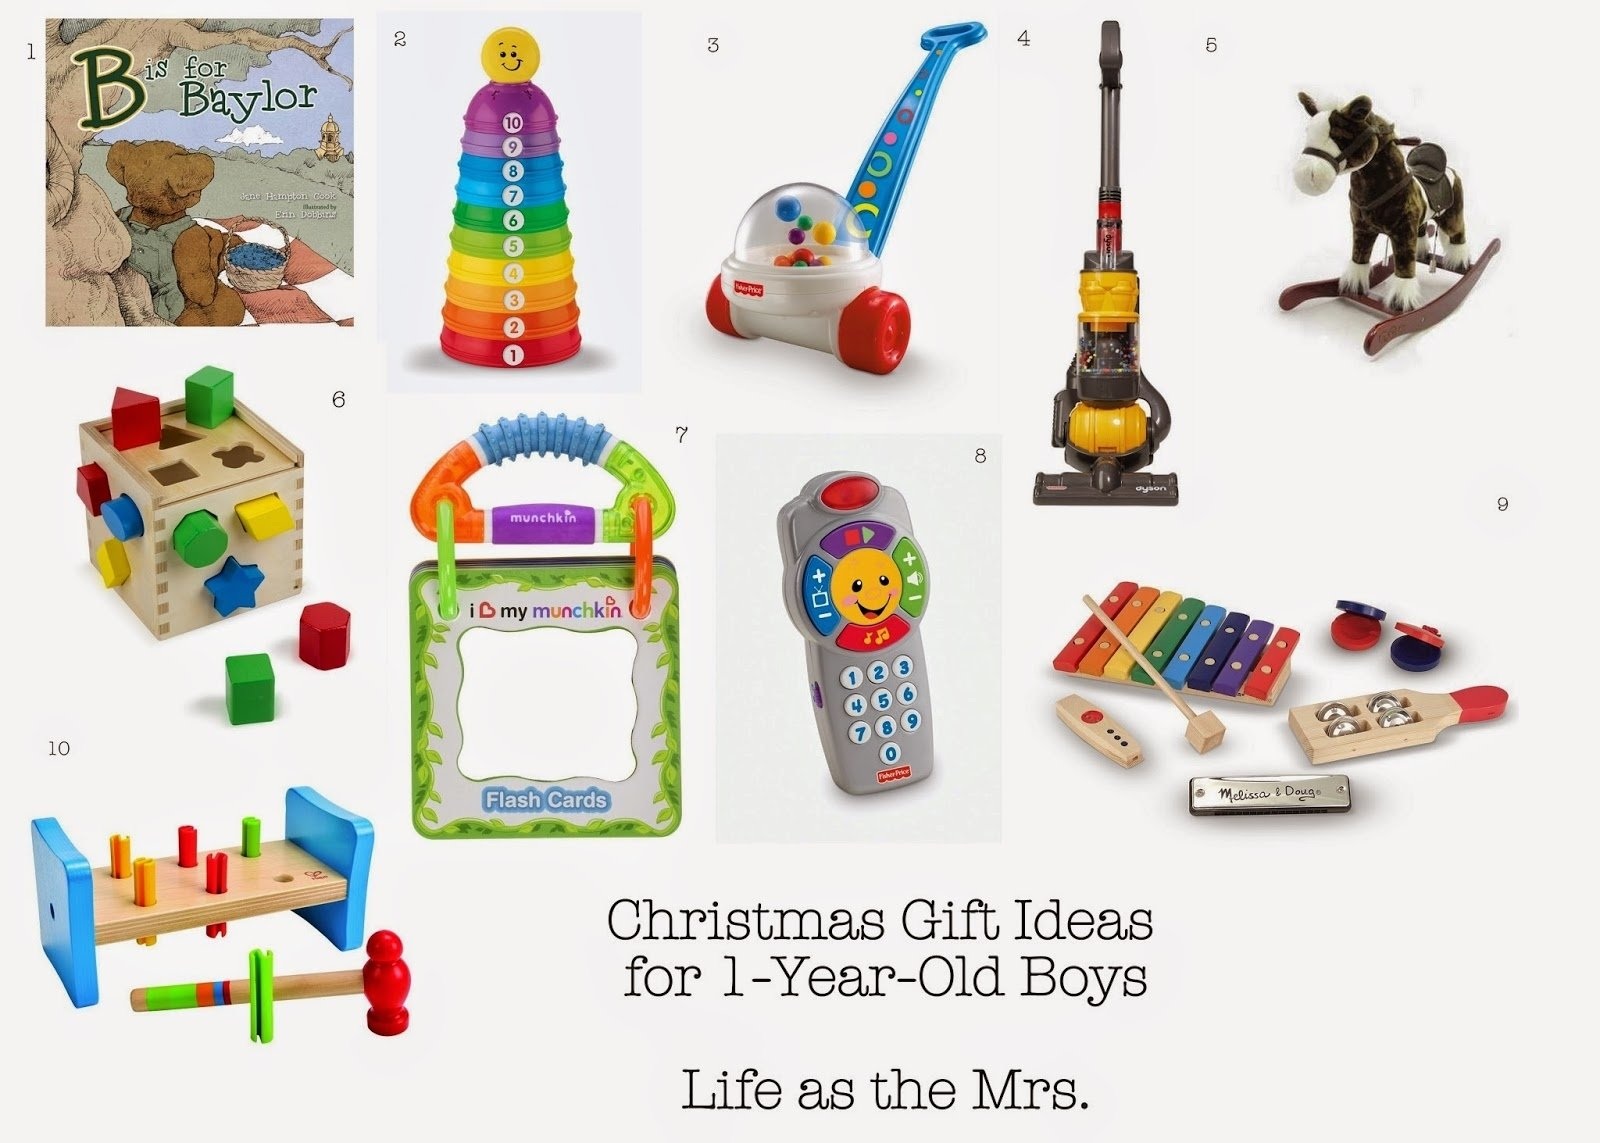 10 Lovely Gift Ideas For One Year Old life as the mrs christmas gift ideas for one year old boys 4 2021